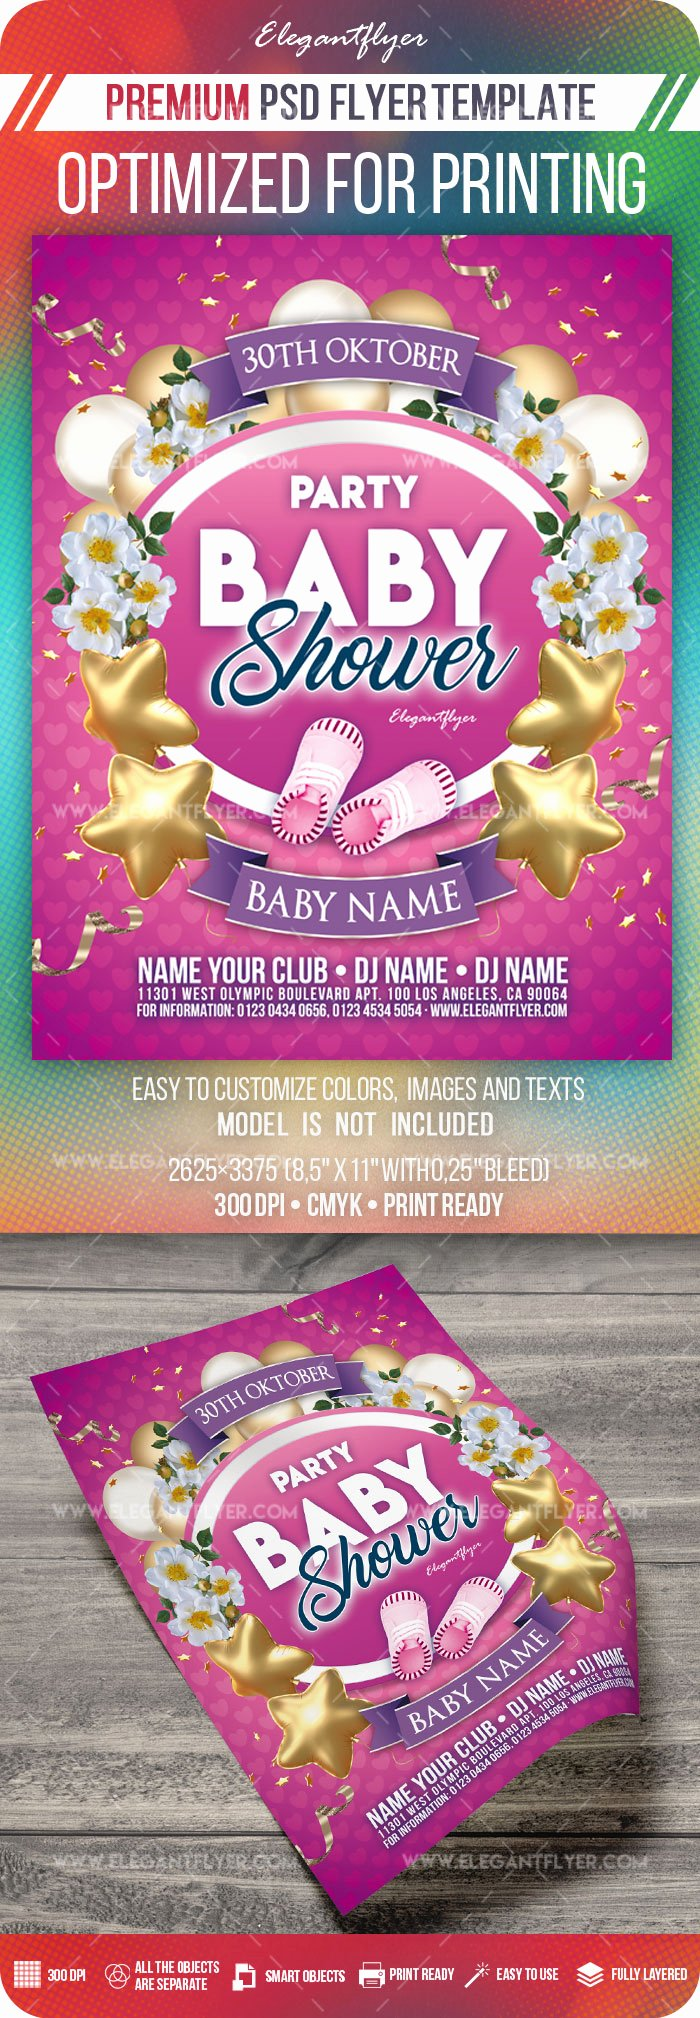 Baby Shower Flyer Ideas Awesome Baby Shower Party – Flyer Psd Template – by Elegantflyer